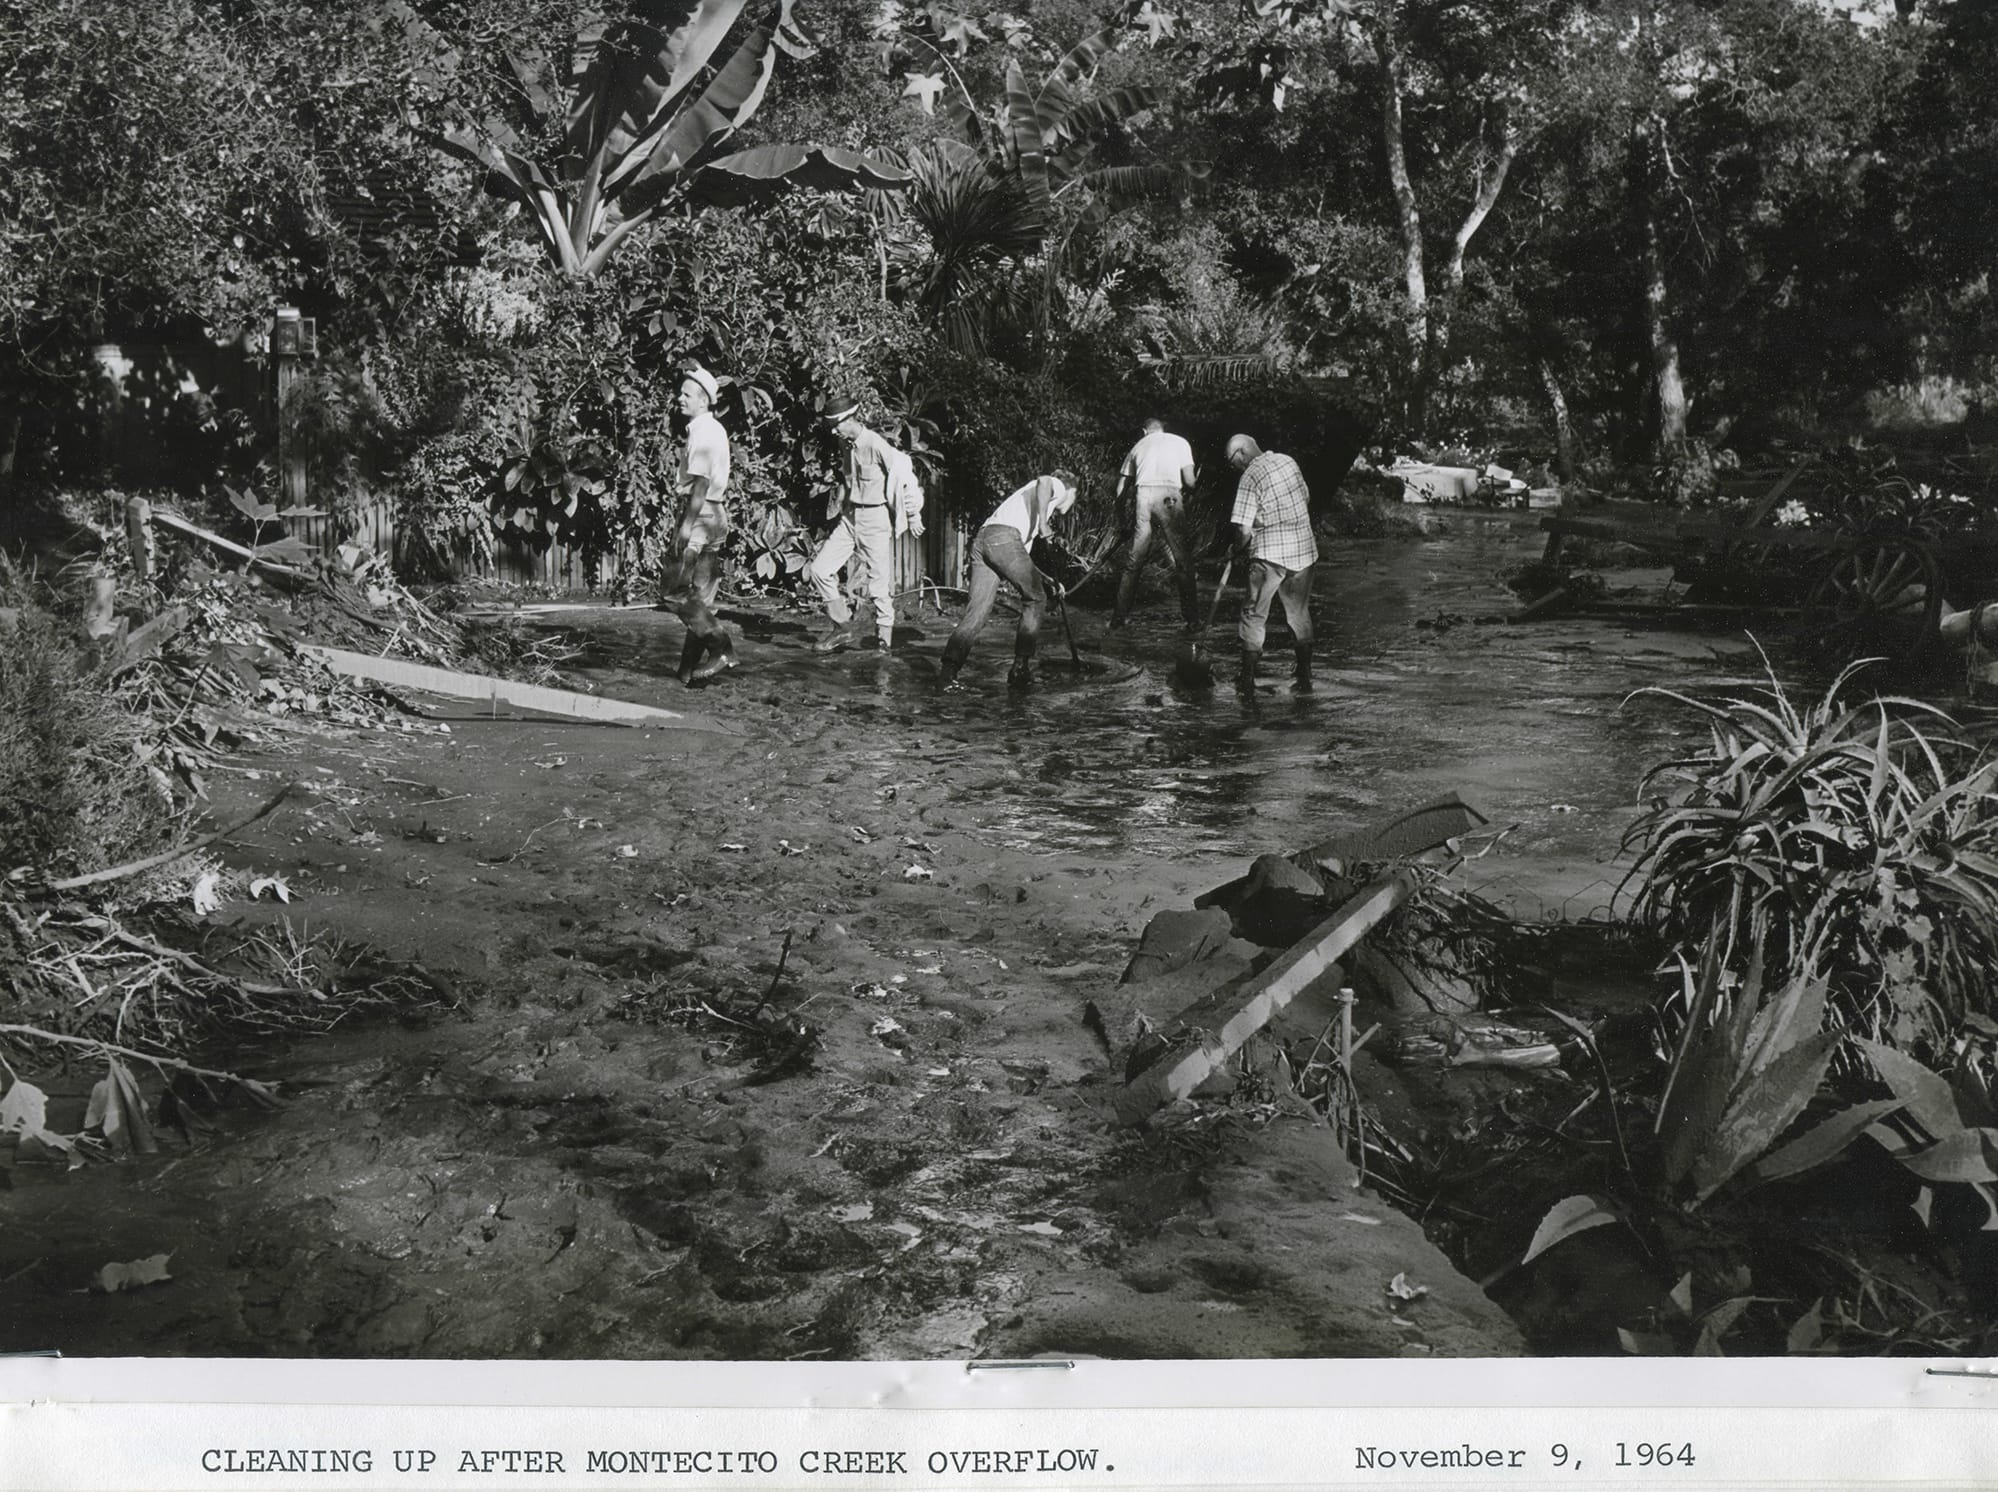 1964 Coyote Fire, Montecito Creek cleanup